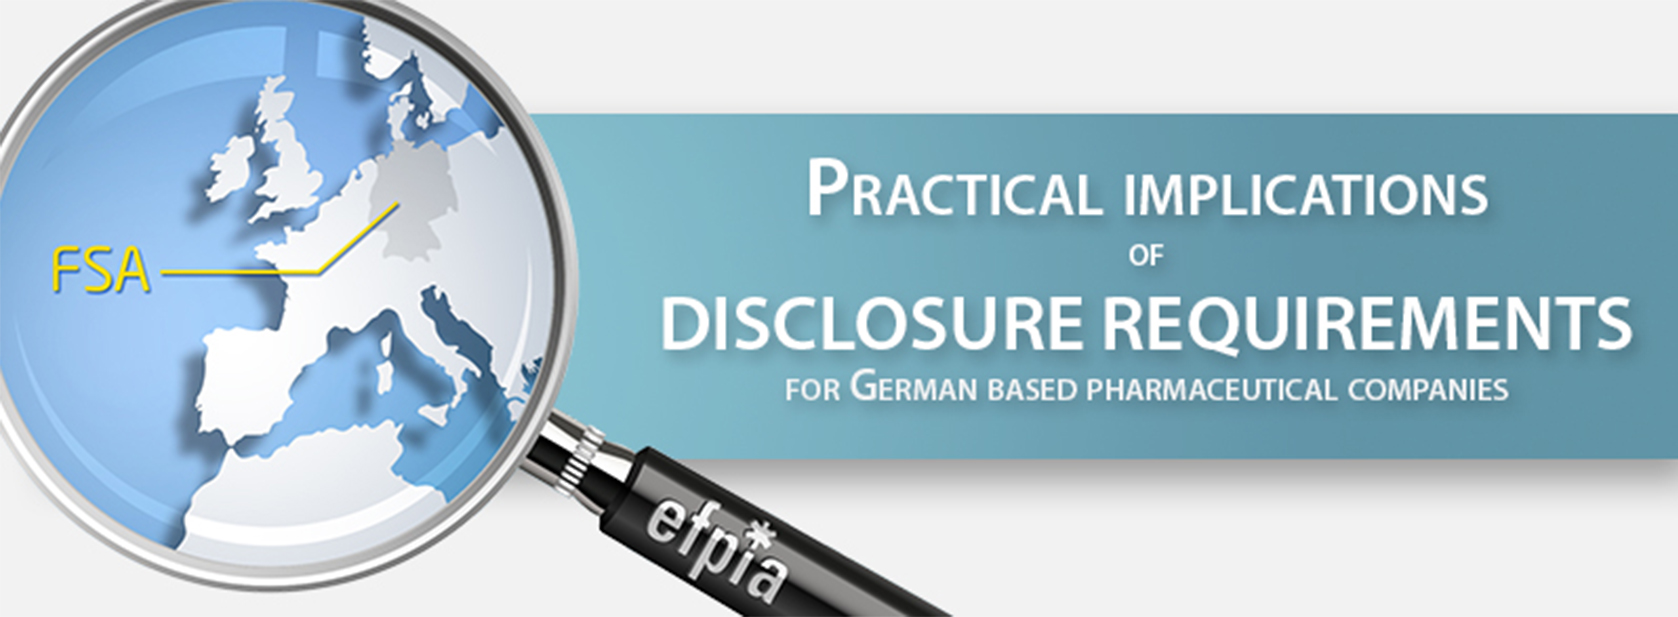 Practical implications of disclosure requirements for German based pharmaceutical companies